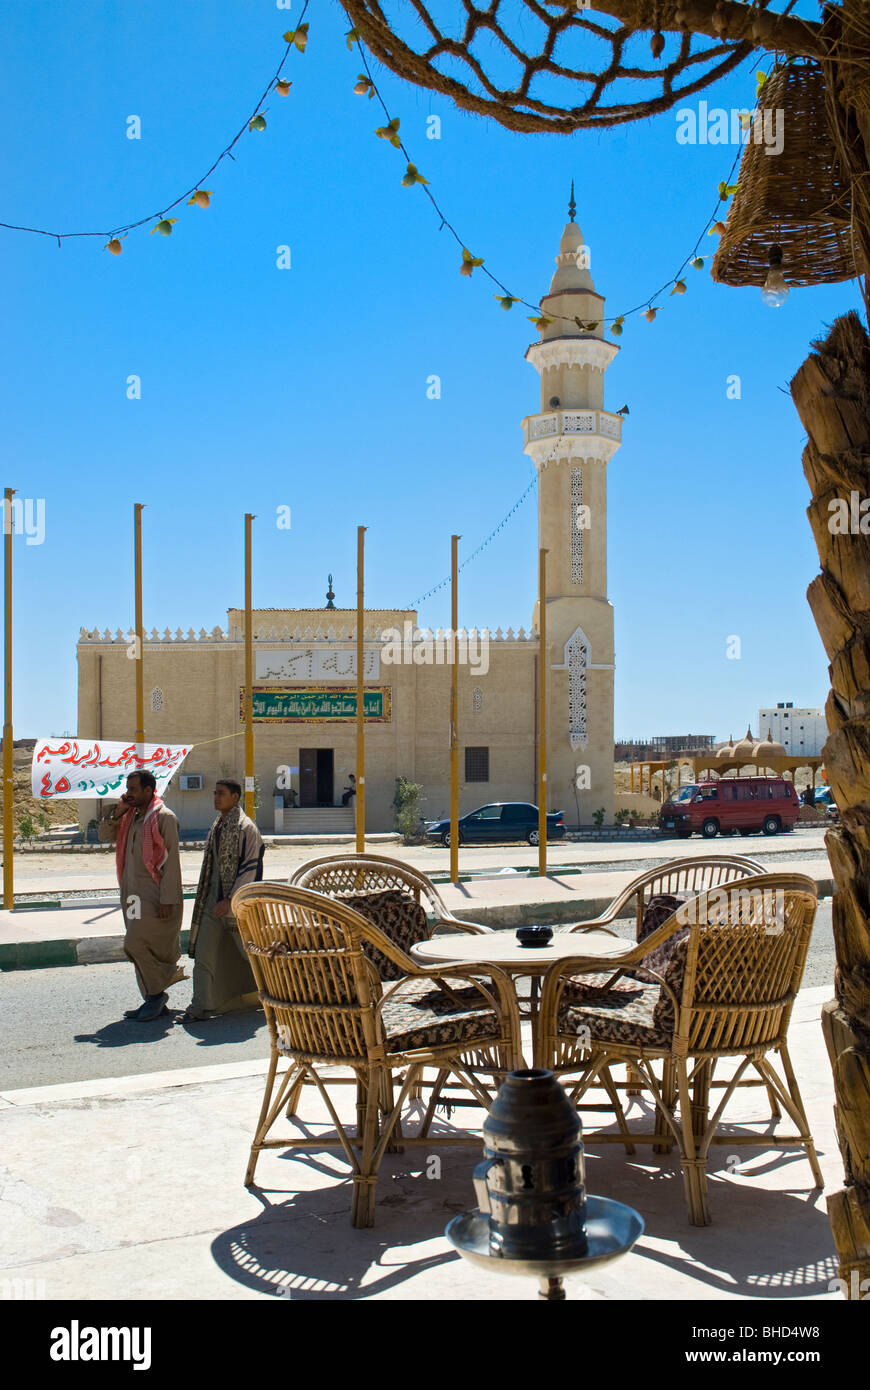 Mosque at Marsa Alam, Red Sea, Egypt - Stock Image